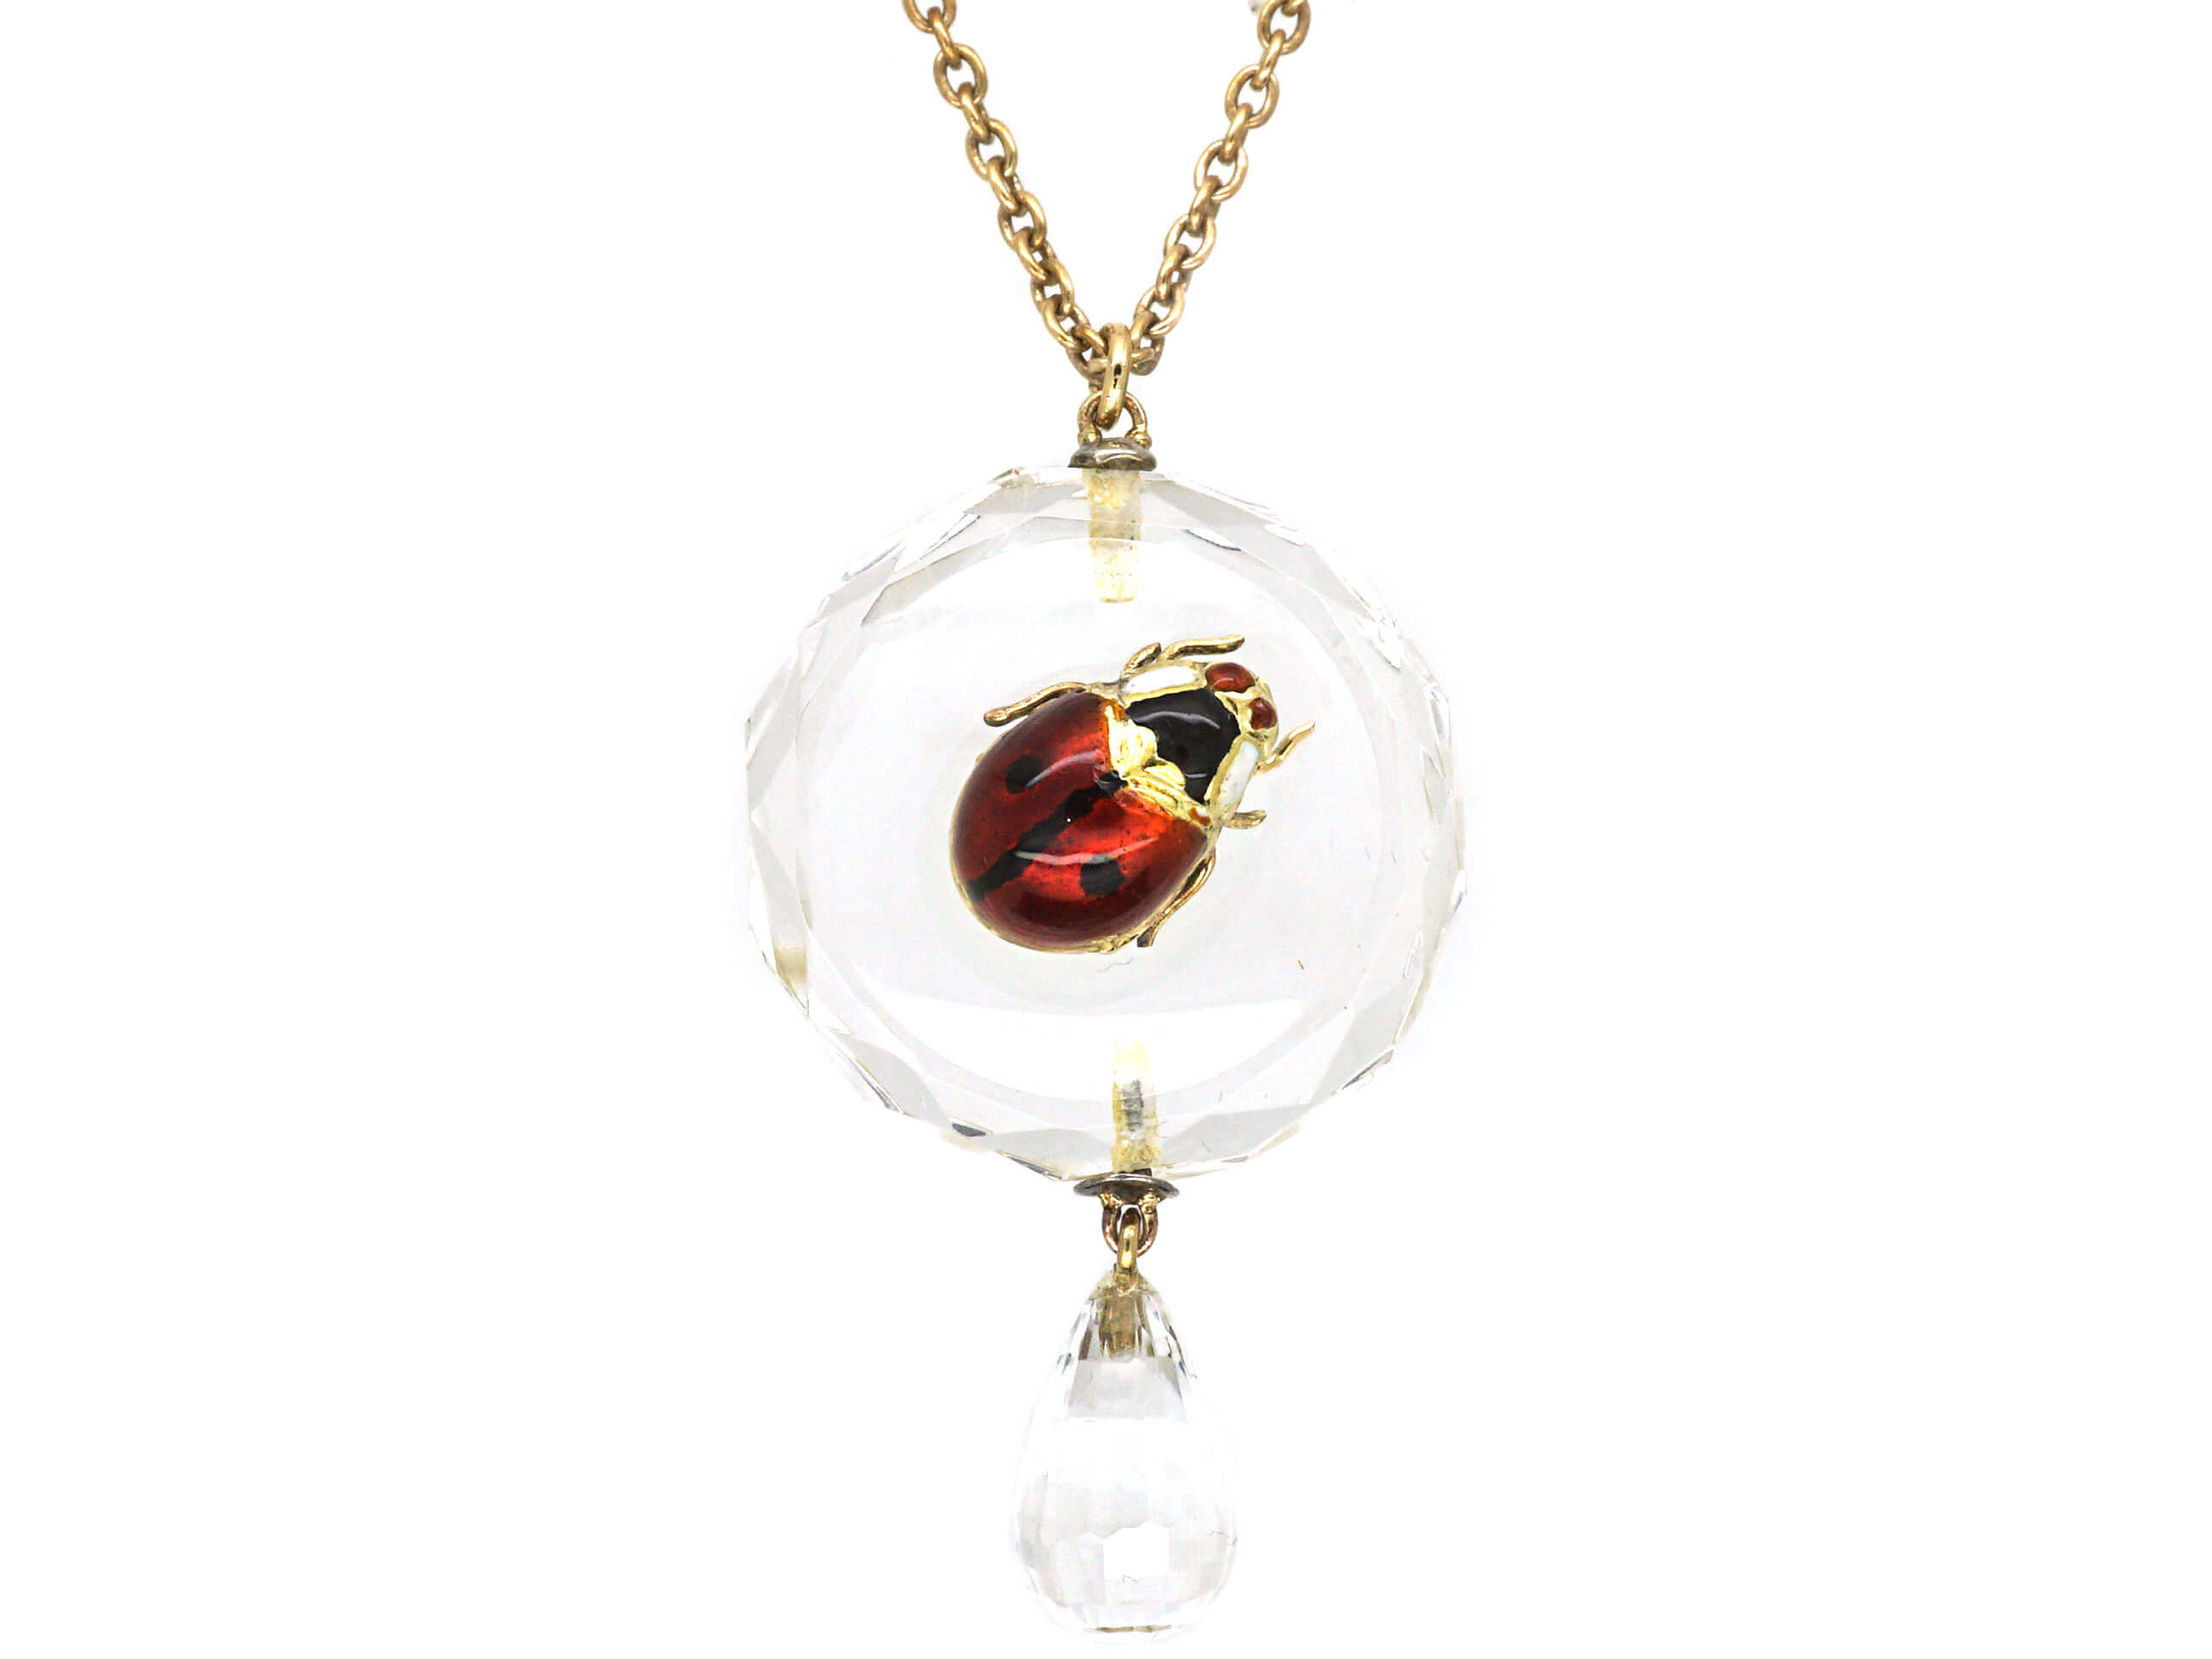 Edwardian Rock Crystal Pendant with an Enamelled Ladybird on 9ct Gold Chain